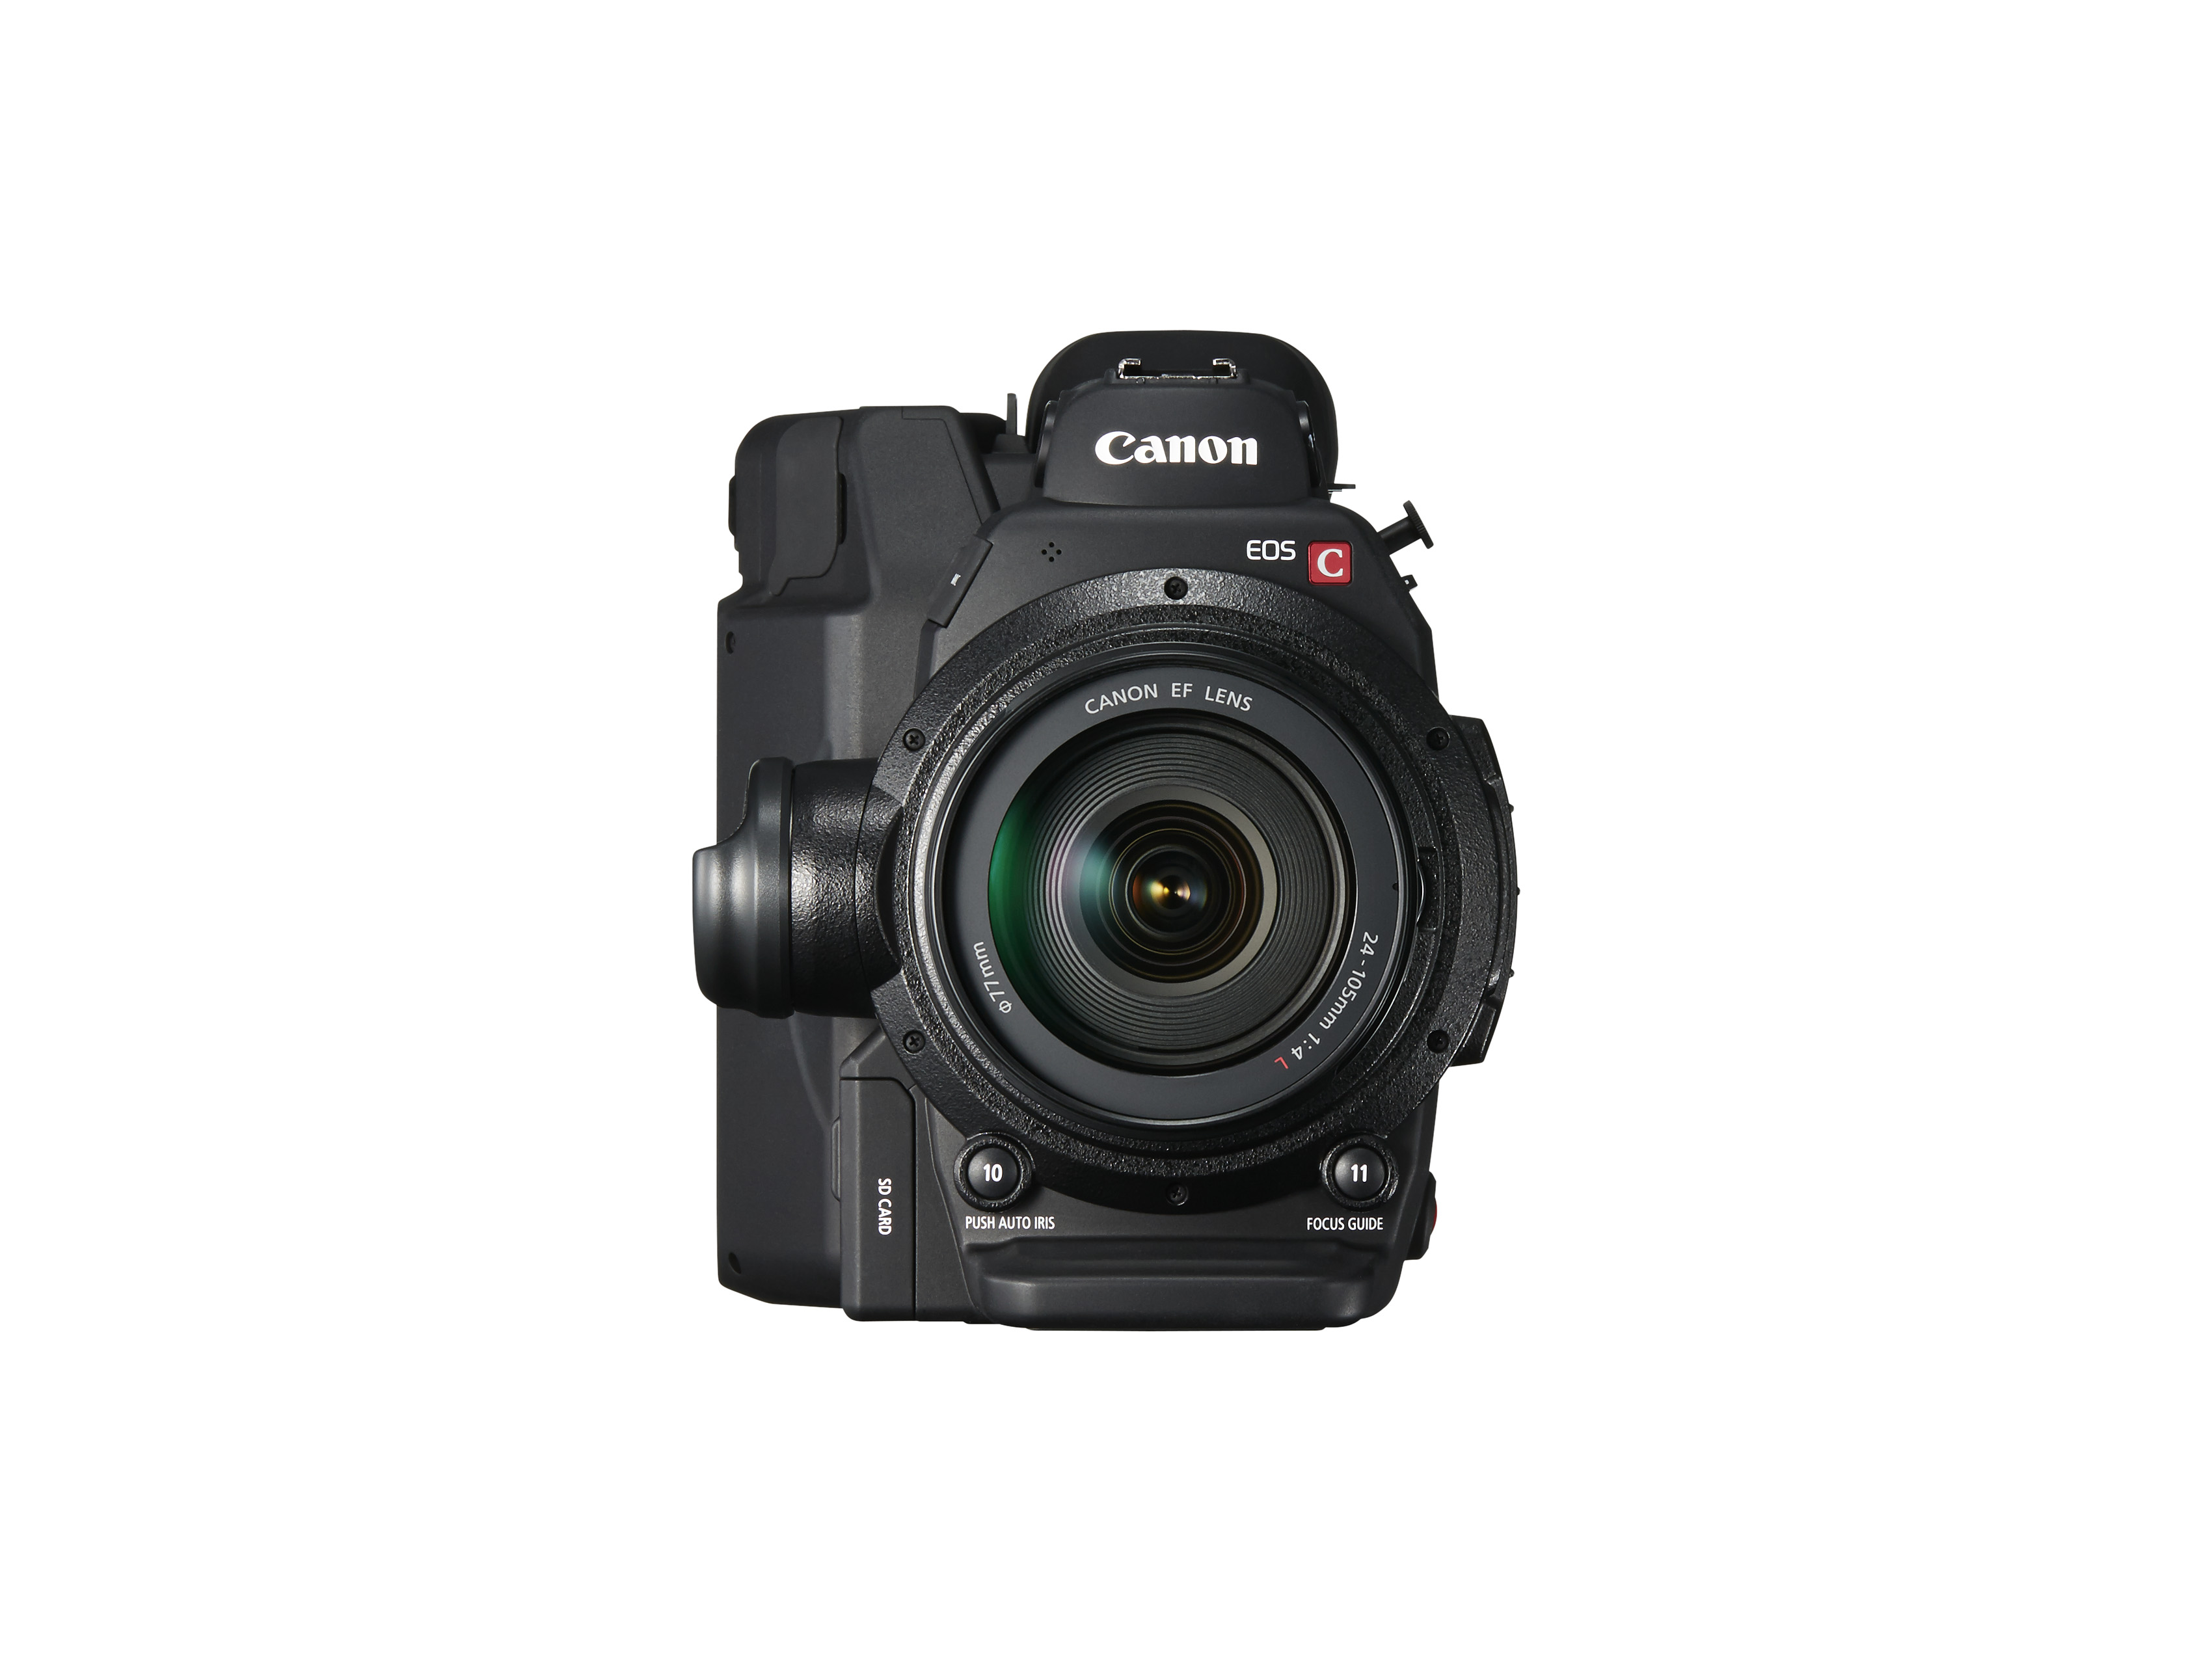 c300 manual canon